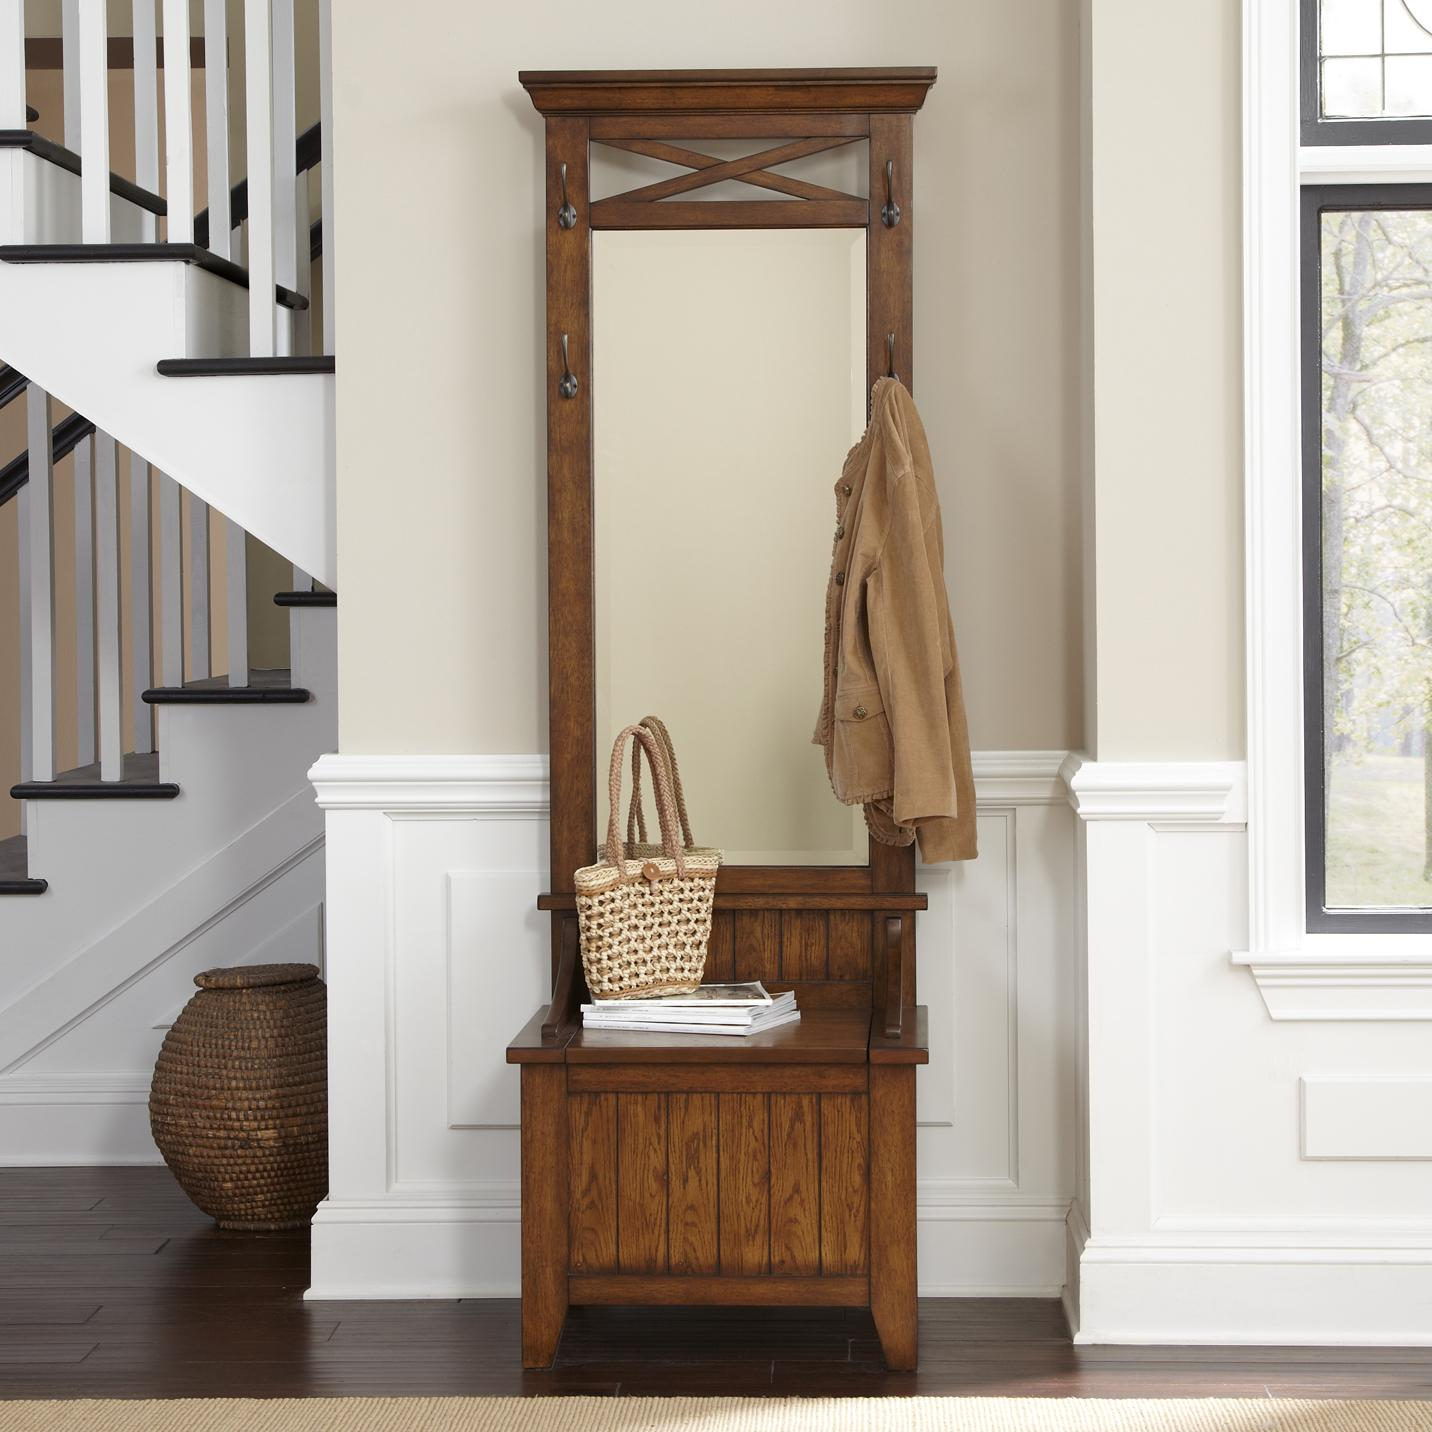 Interesting Entry Room Decor Ideas with Entryway Mirror: Entryway Mirror | Entranceway Decor | Entryway Table Lamps